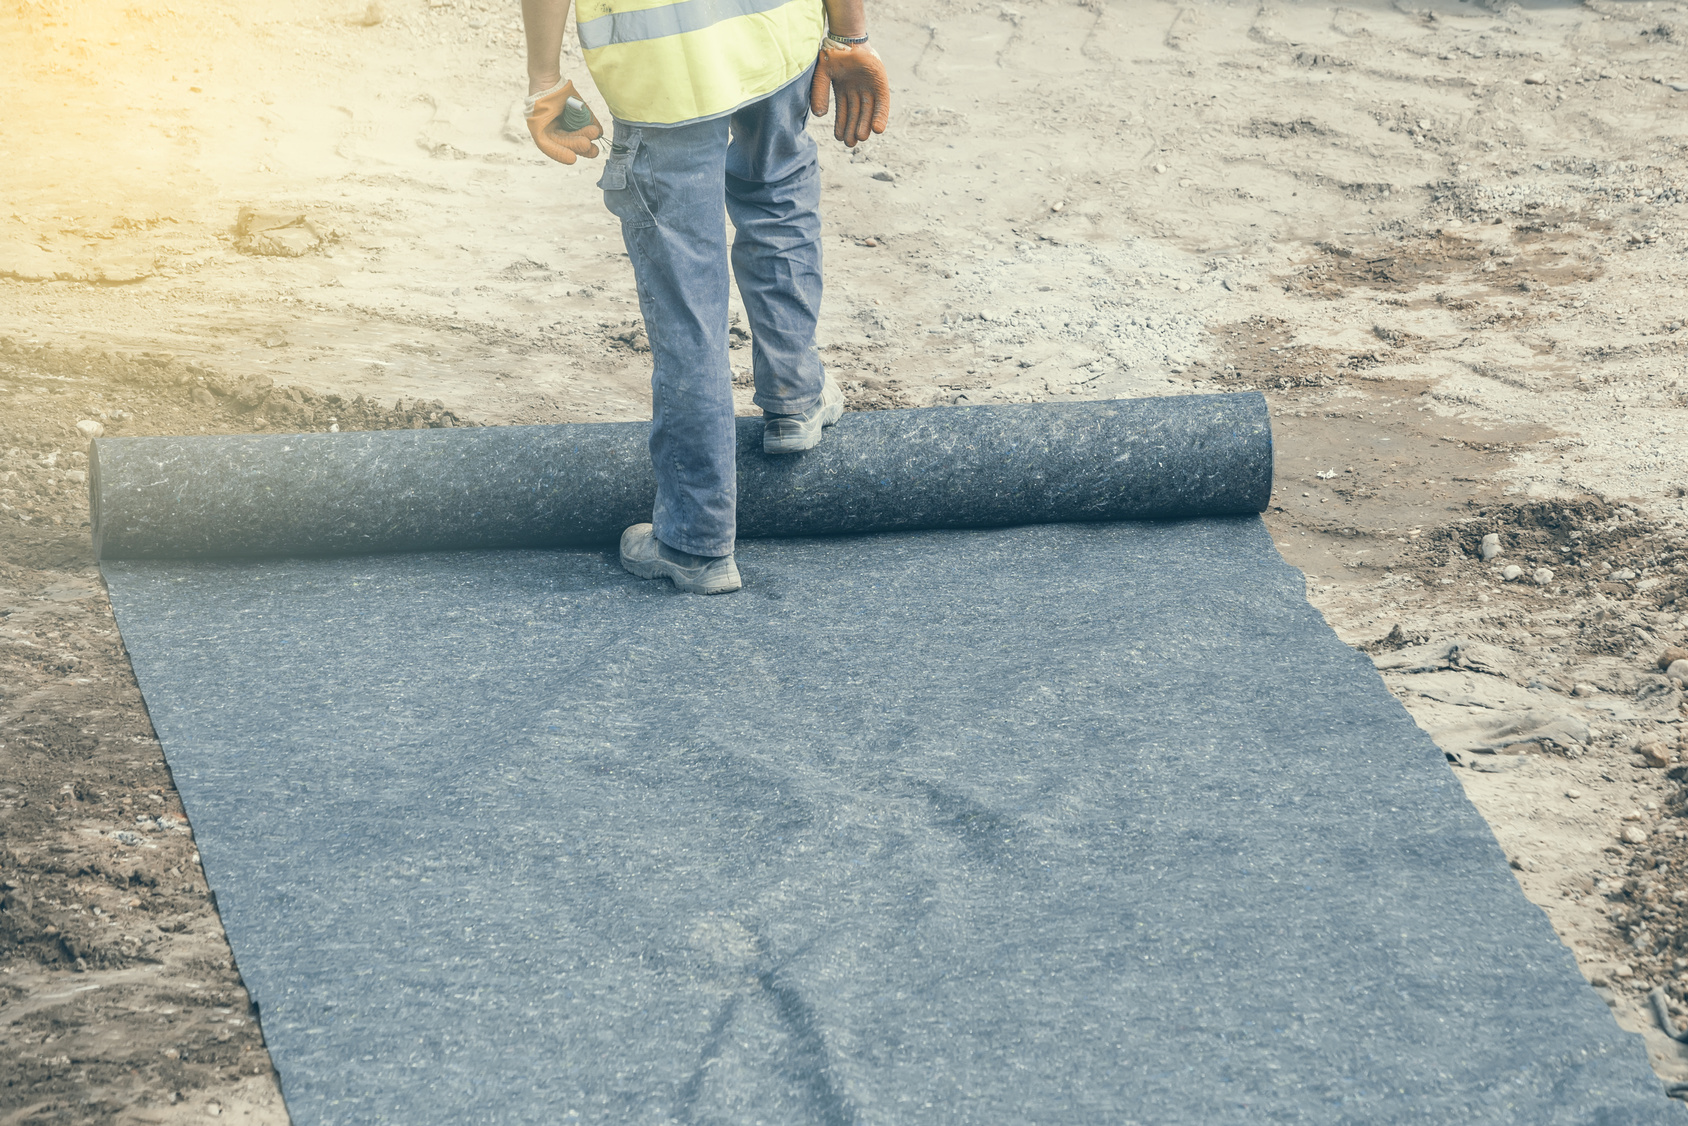 Installation of geotextile